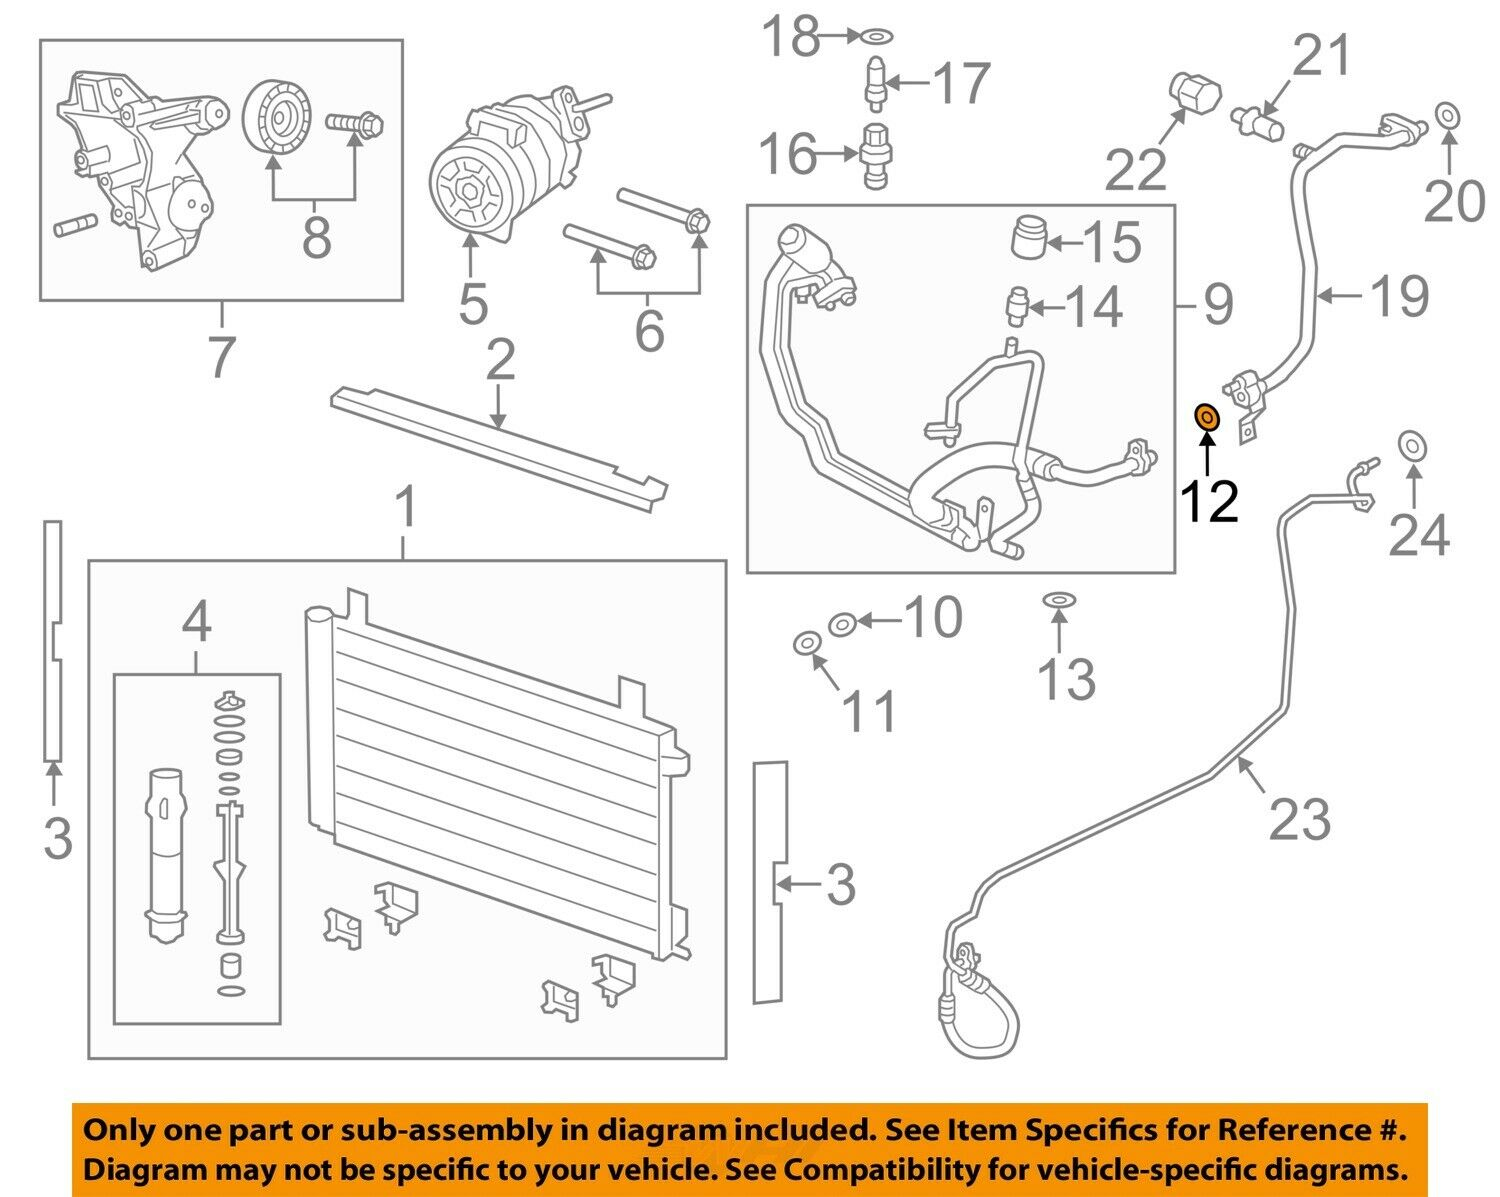 Chevrolet Gm Oem A C Ac Condenser Compressor Line Pressure Hose O Diagram For All Corvette Years 1 Of 2only Available